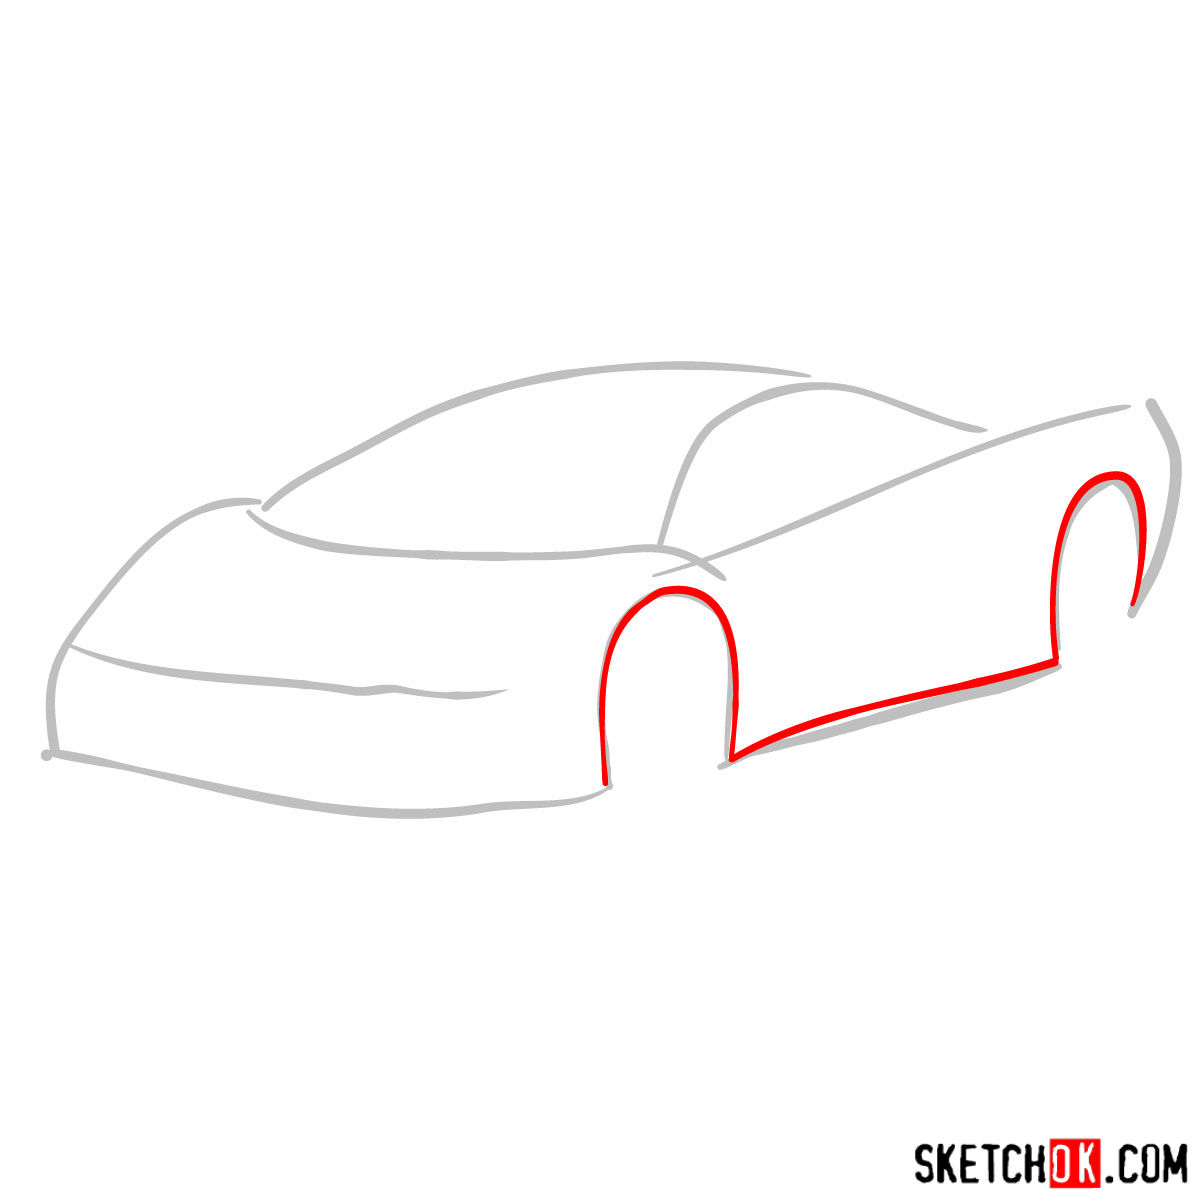 How to draw SSC Ultimate Aero TT 2006 - step 02